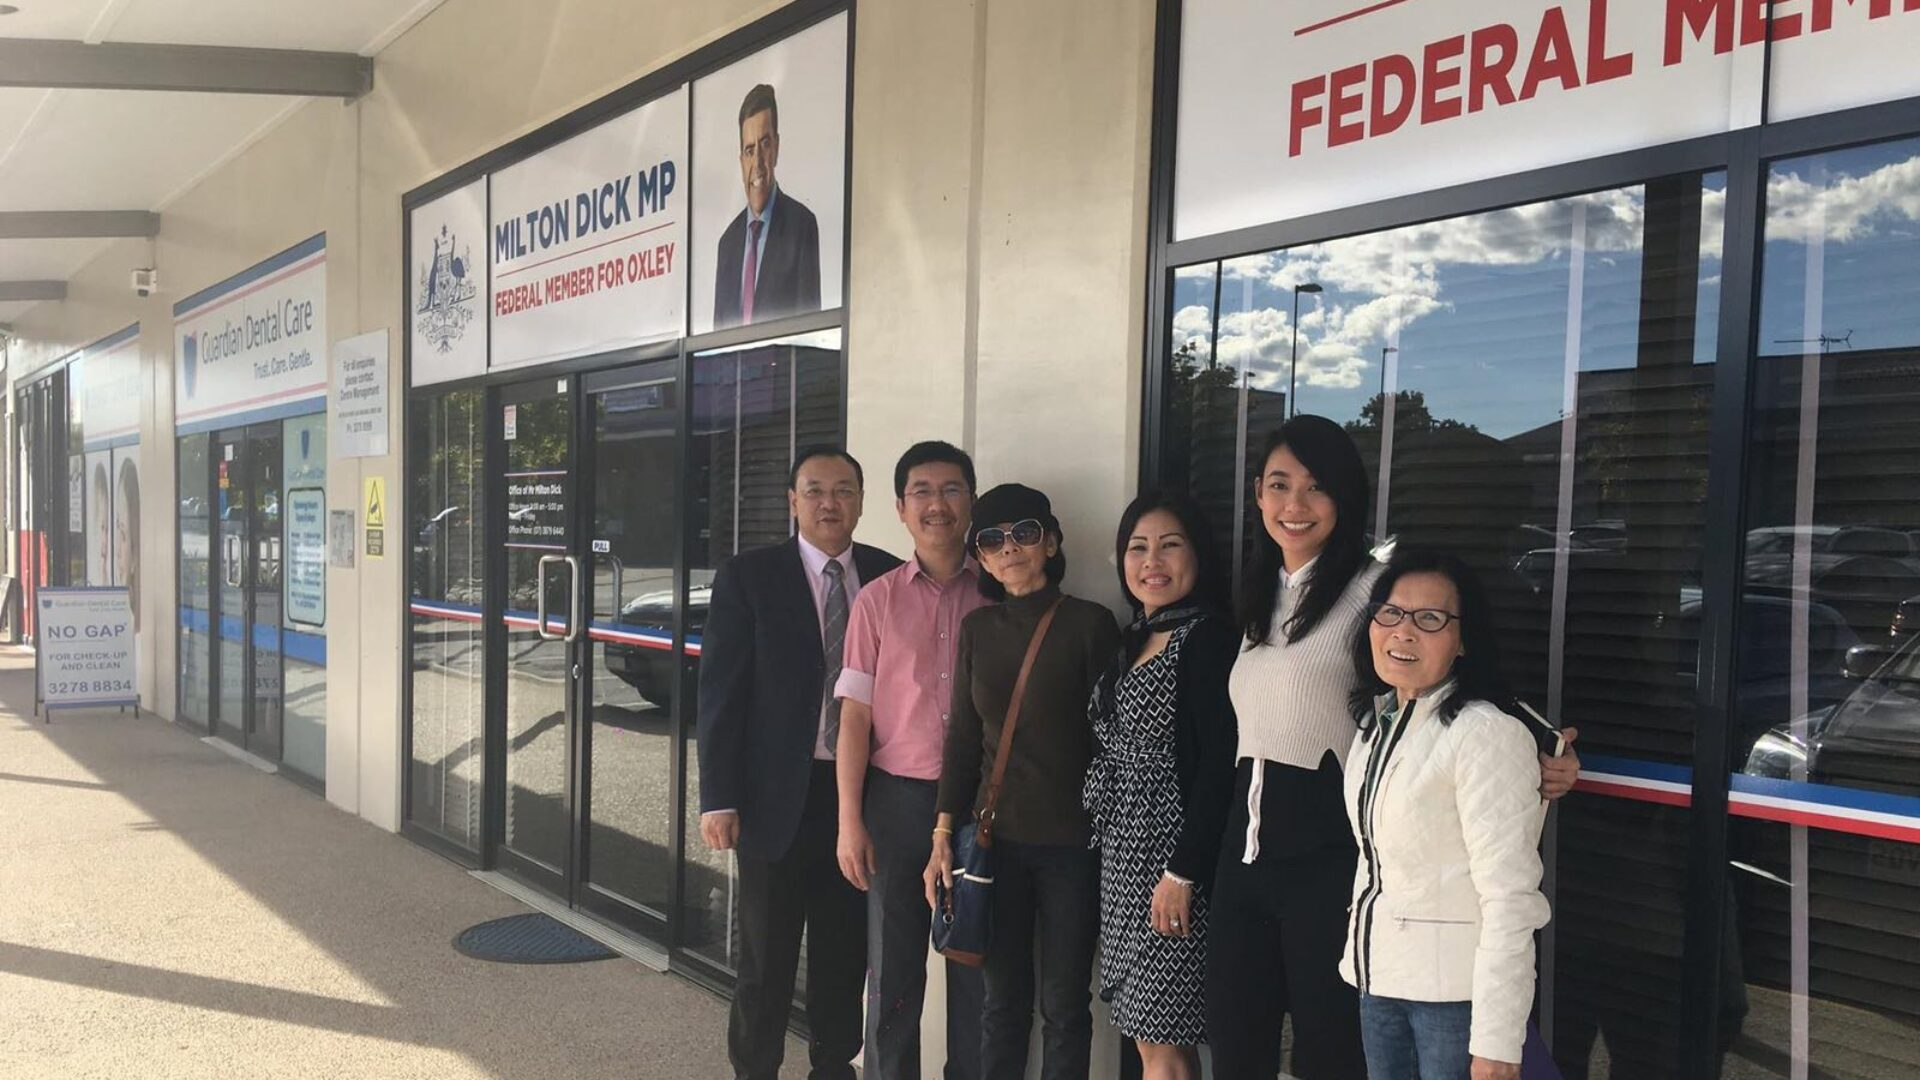 Dinh Nguyen Kha's mother met an Australian politician